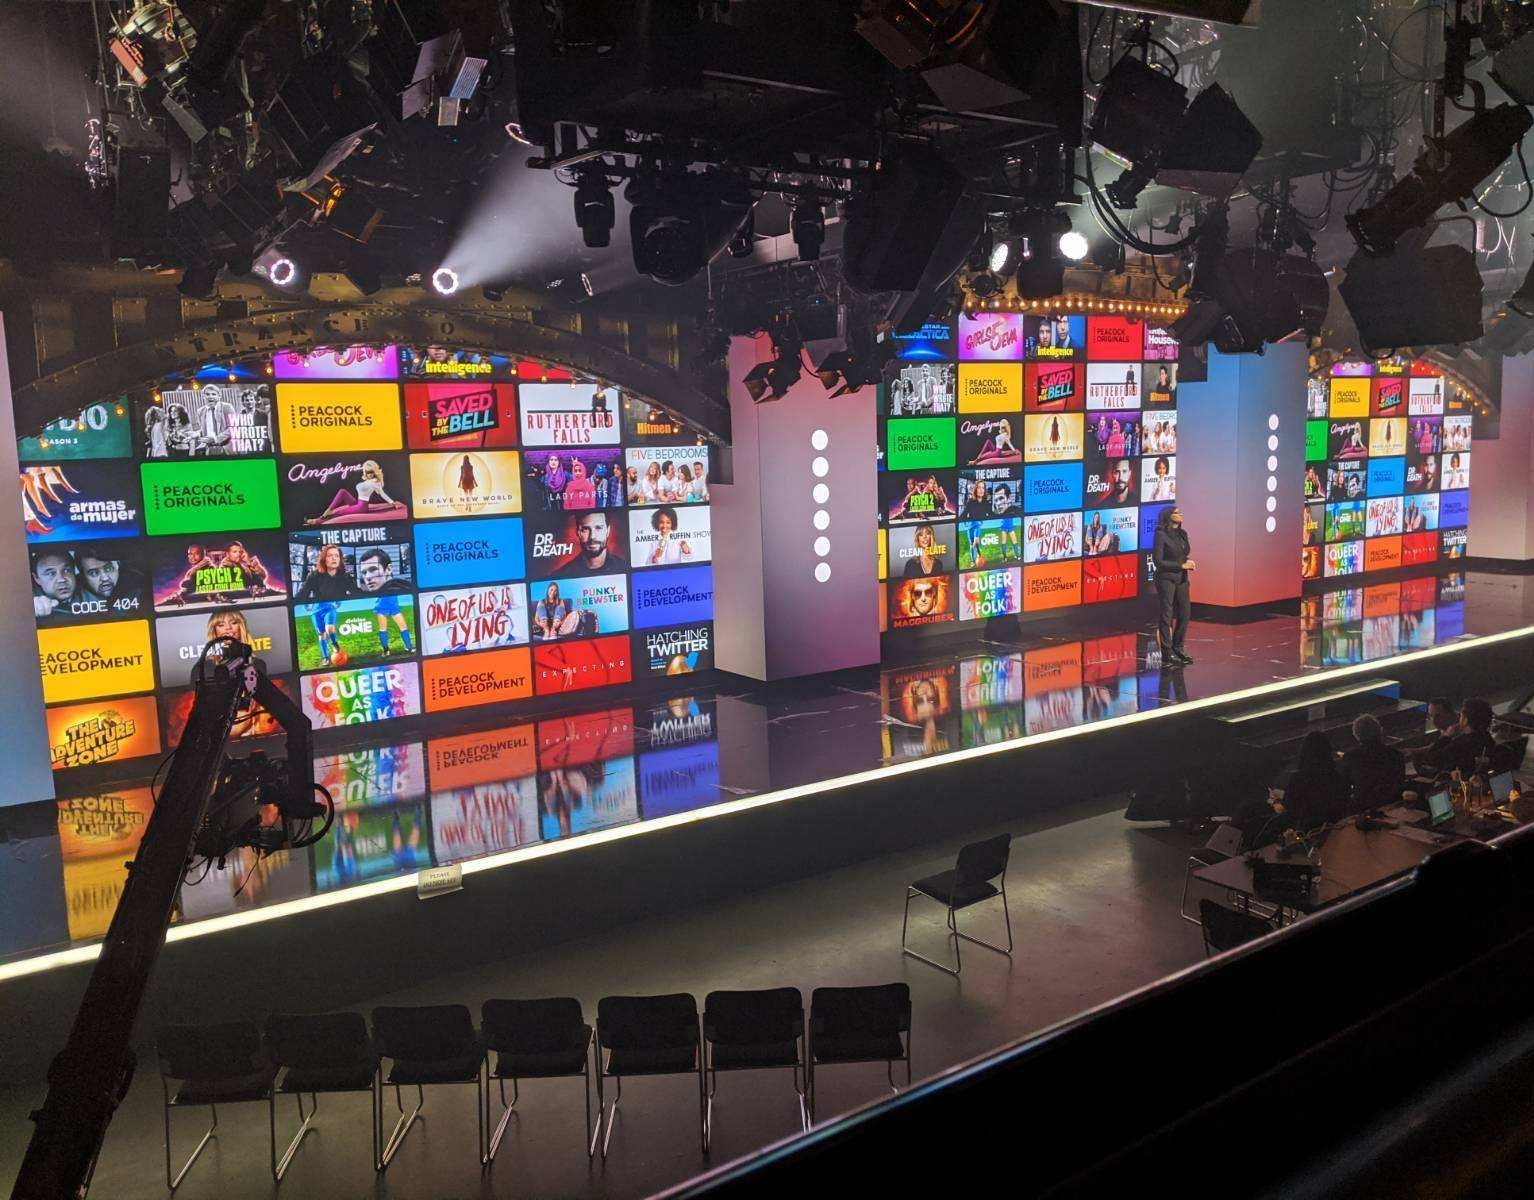 Nbc Peacock Launch Event Led Walls And Processors